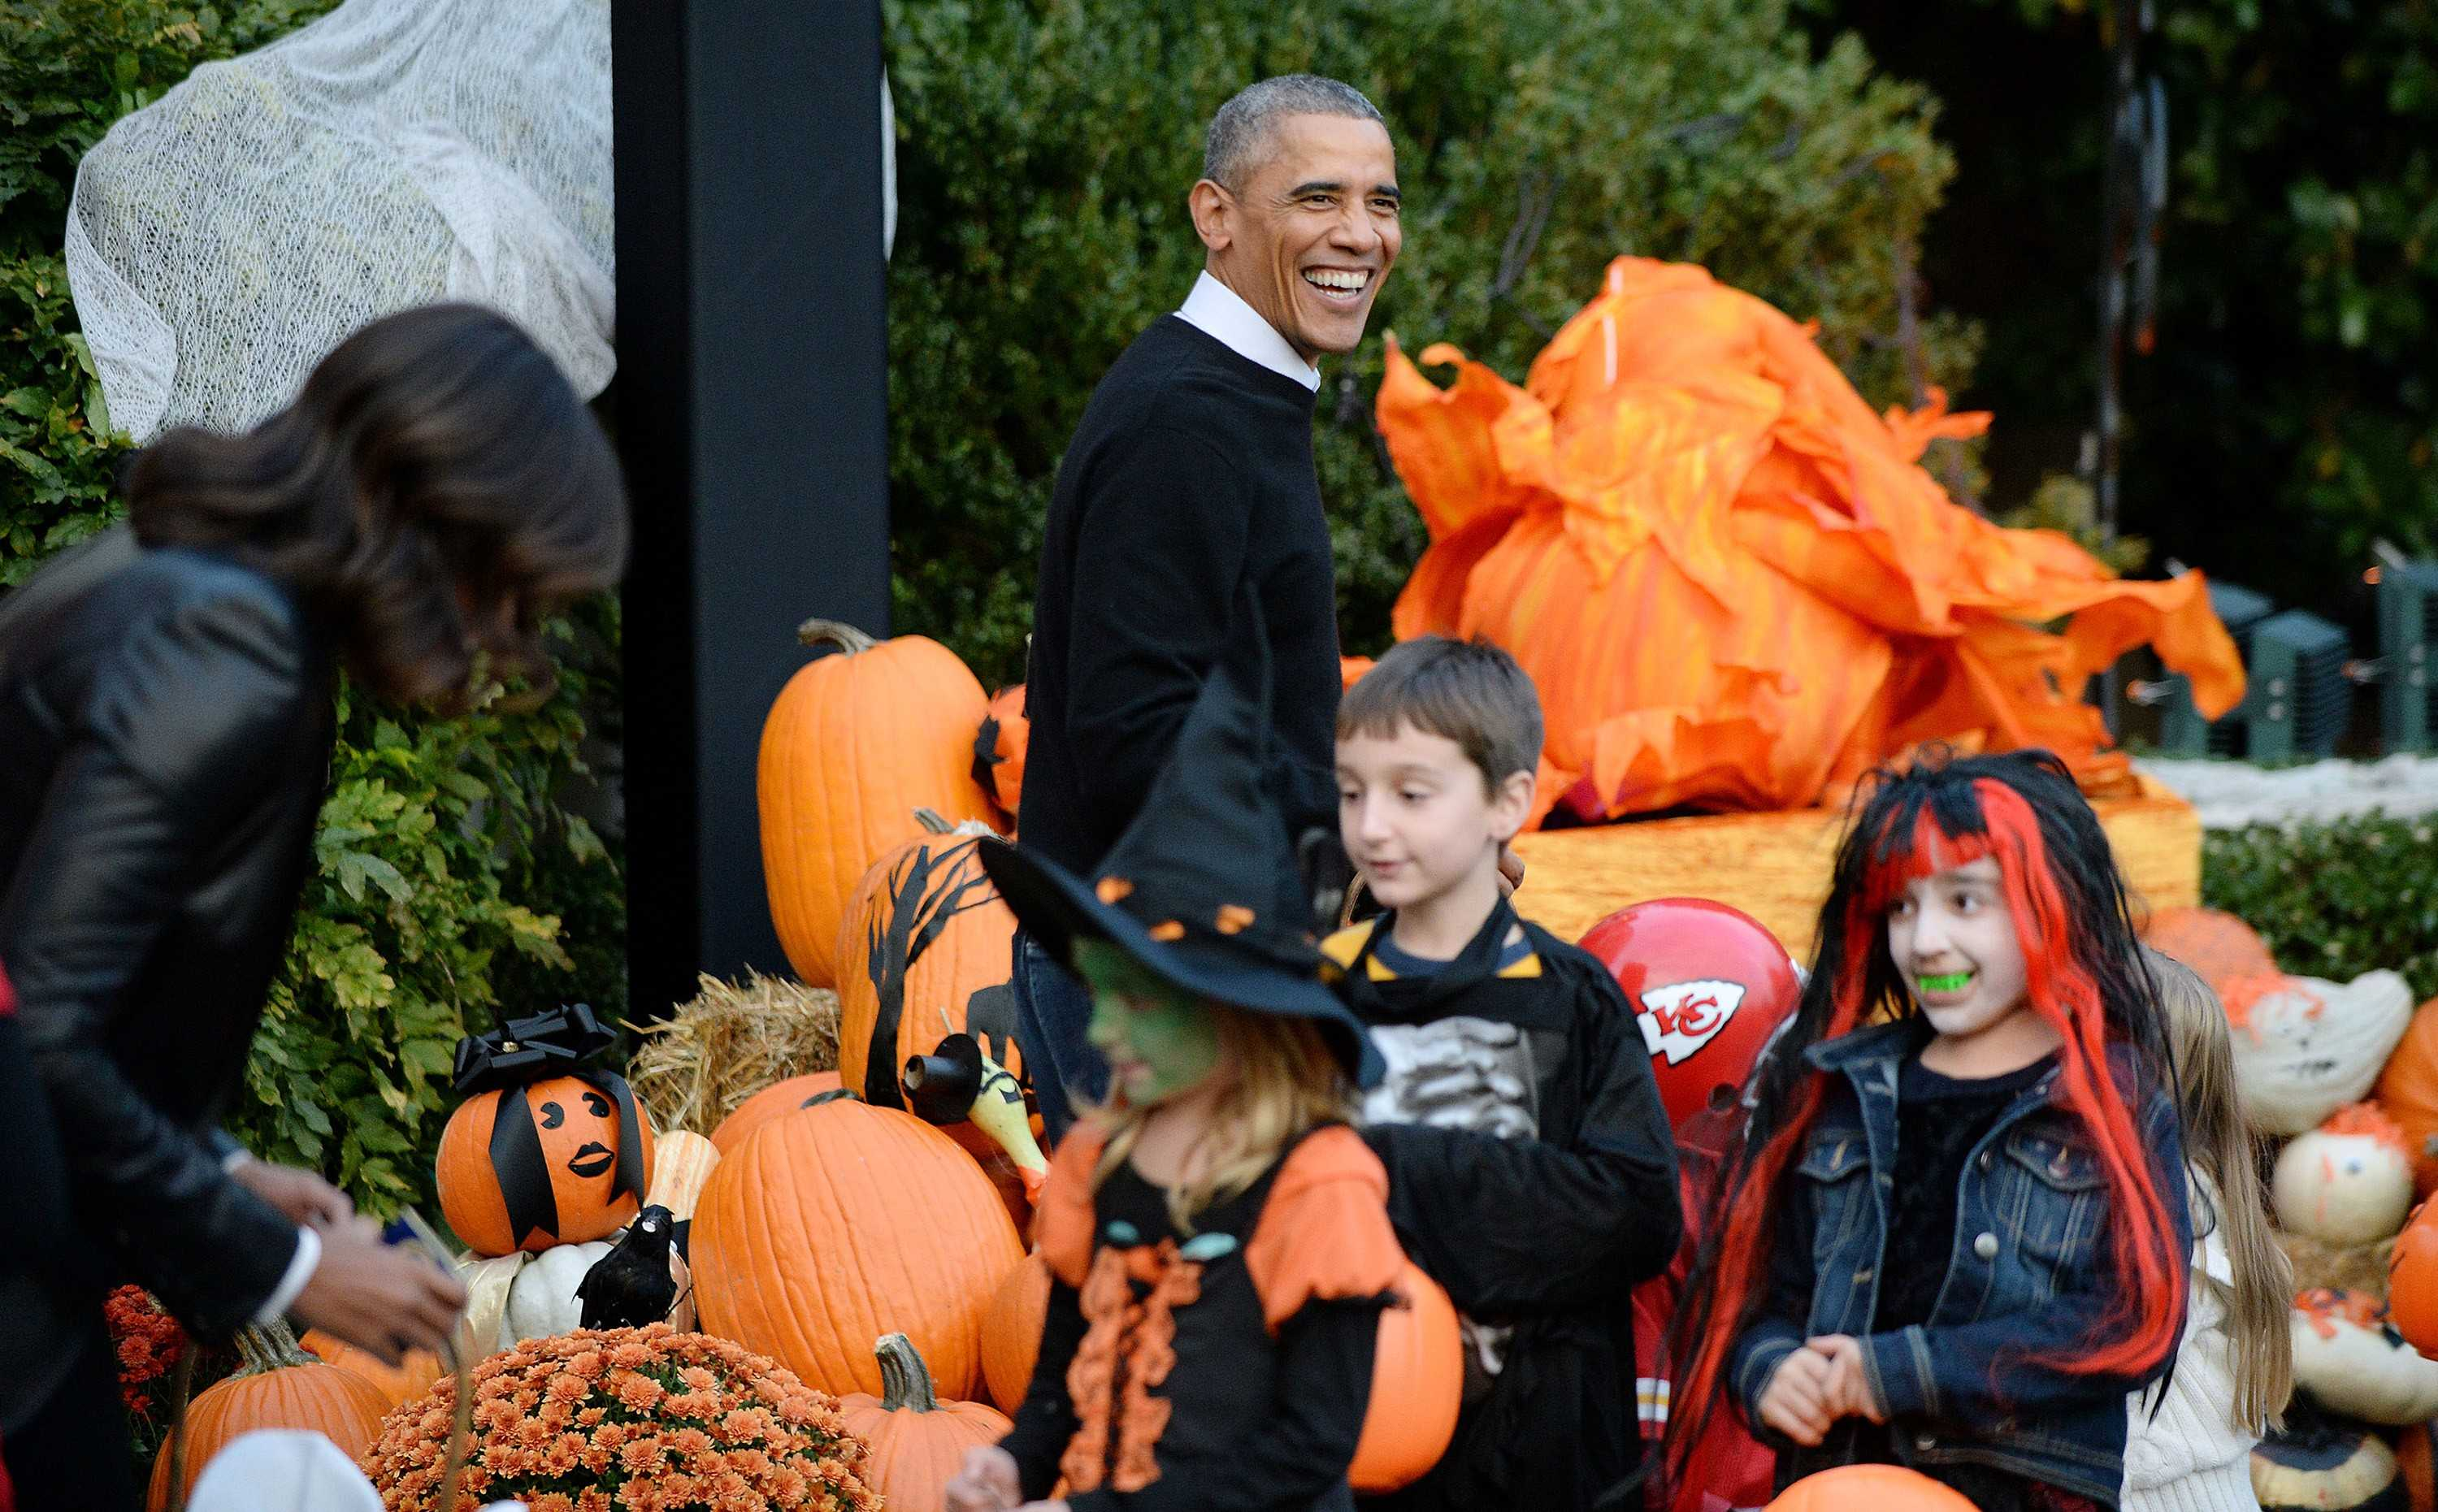 U.S. President Barack Obama and first lady Michelle Obama give out treats to children on the South Lawn of the White House, Oct. 31, 2014 in Washington, D.C. President Obama and First Lady Michelle Obama welcomed local children and children of military families to trick-or-treat for Halloween. (Olivier Douliery/Abaca Press/MCT)